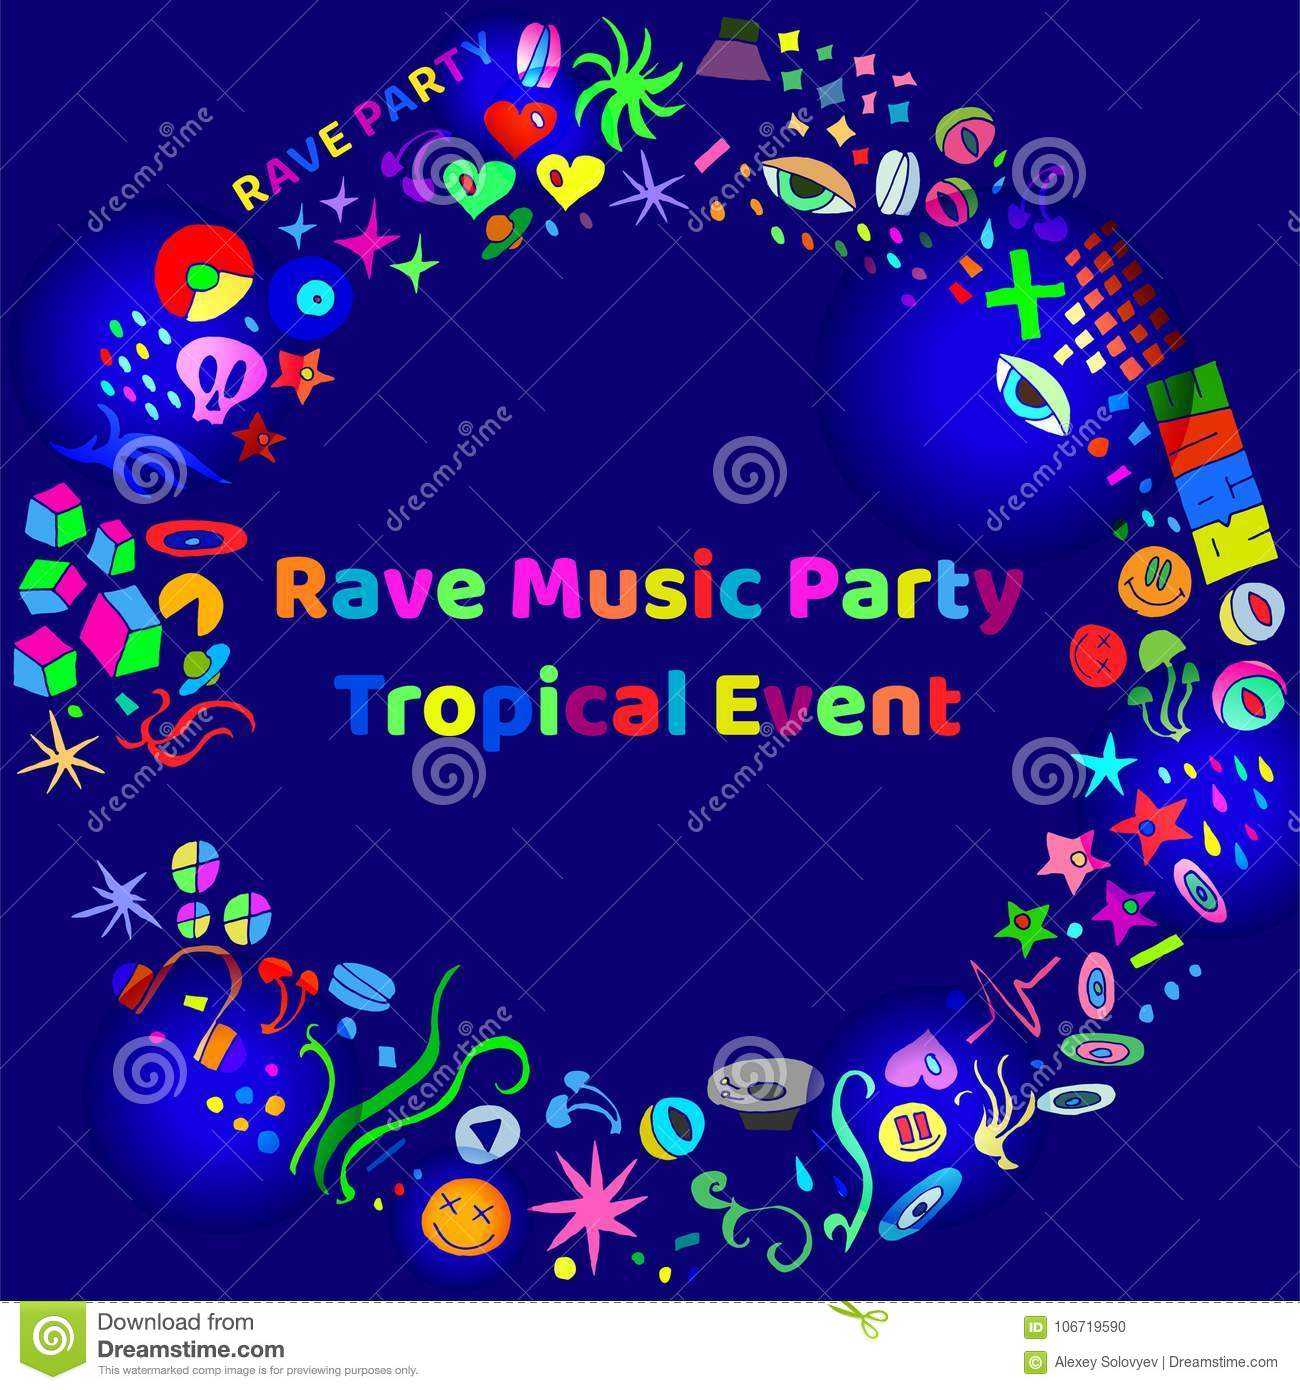 Rave Music Party Event Hand-drawn Elements Stock Vector